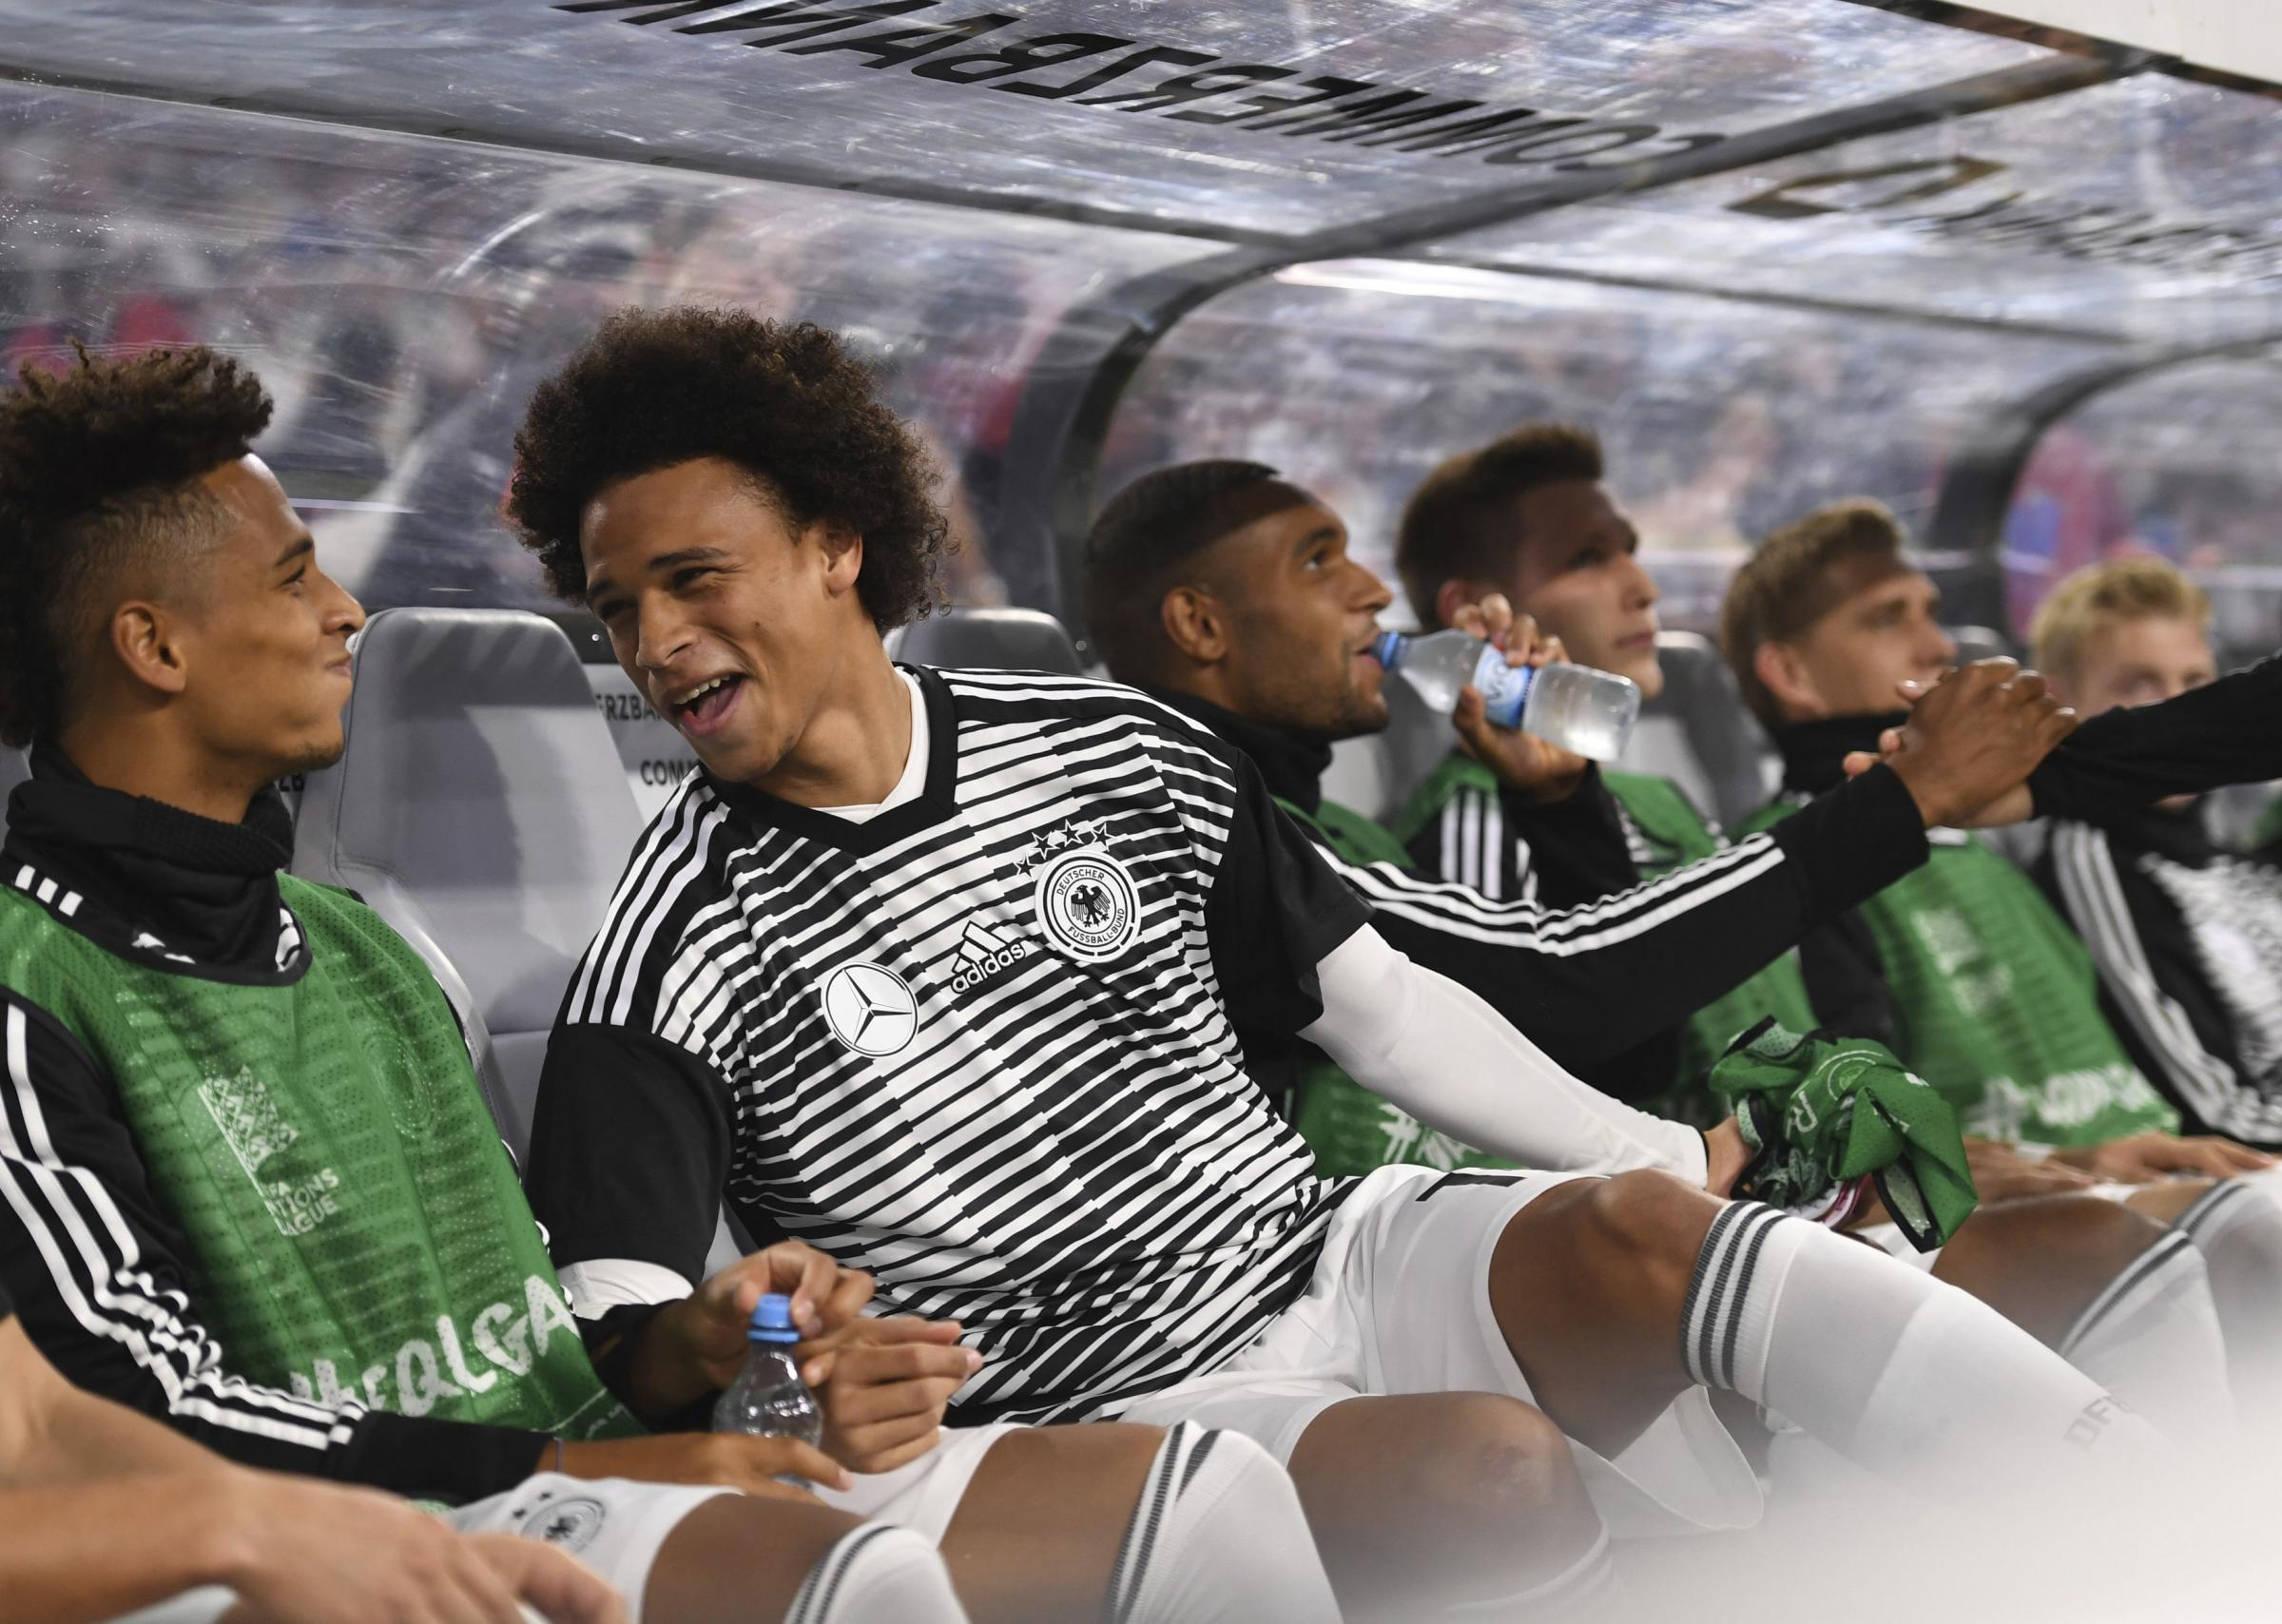 Germany's Thilo Kehrer, left, and Leroy Sane, second left, sit on the bench during the UEFA Nations League soccer match between Germany and France in Munich, Germany, Thursday, Sept. 6, 2018. (Marius Becker/dpa via AP).